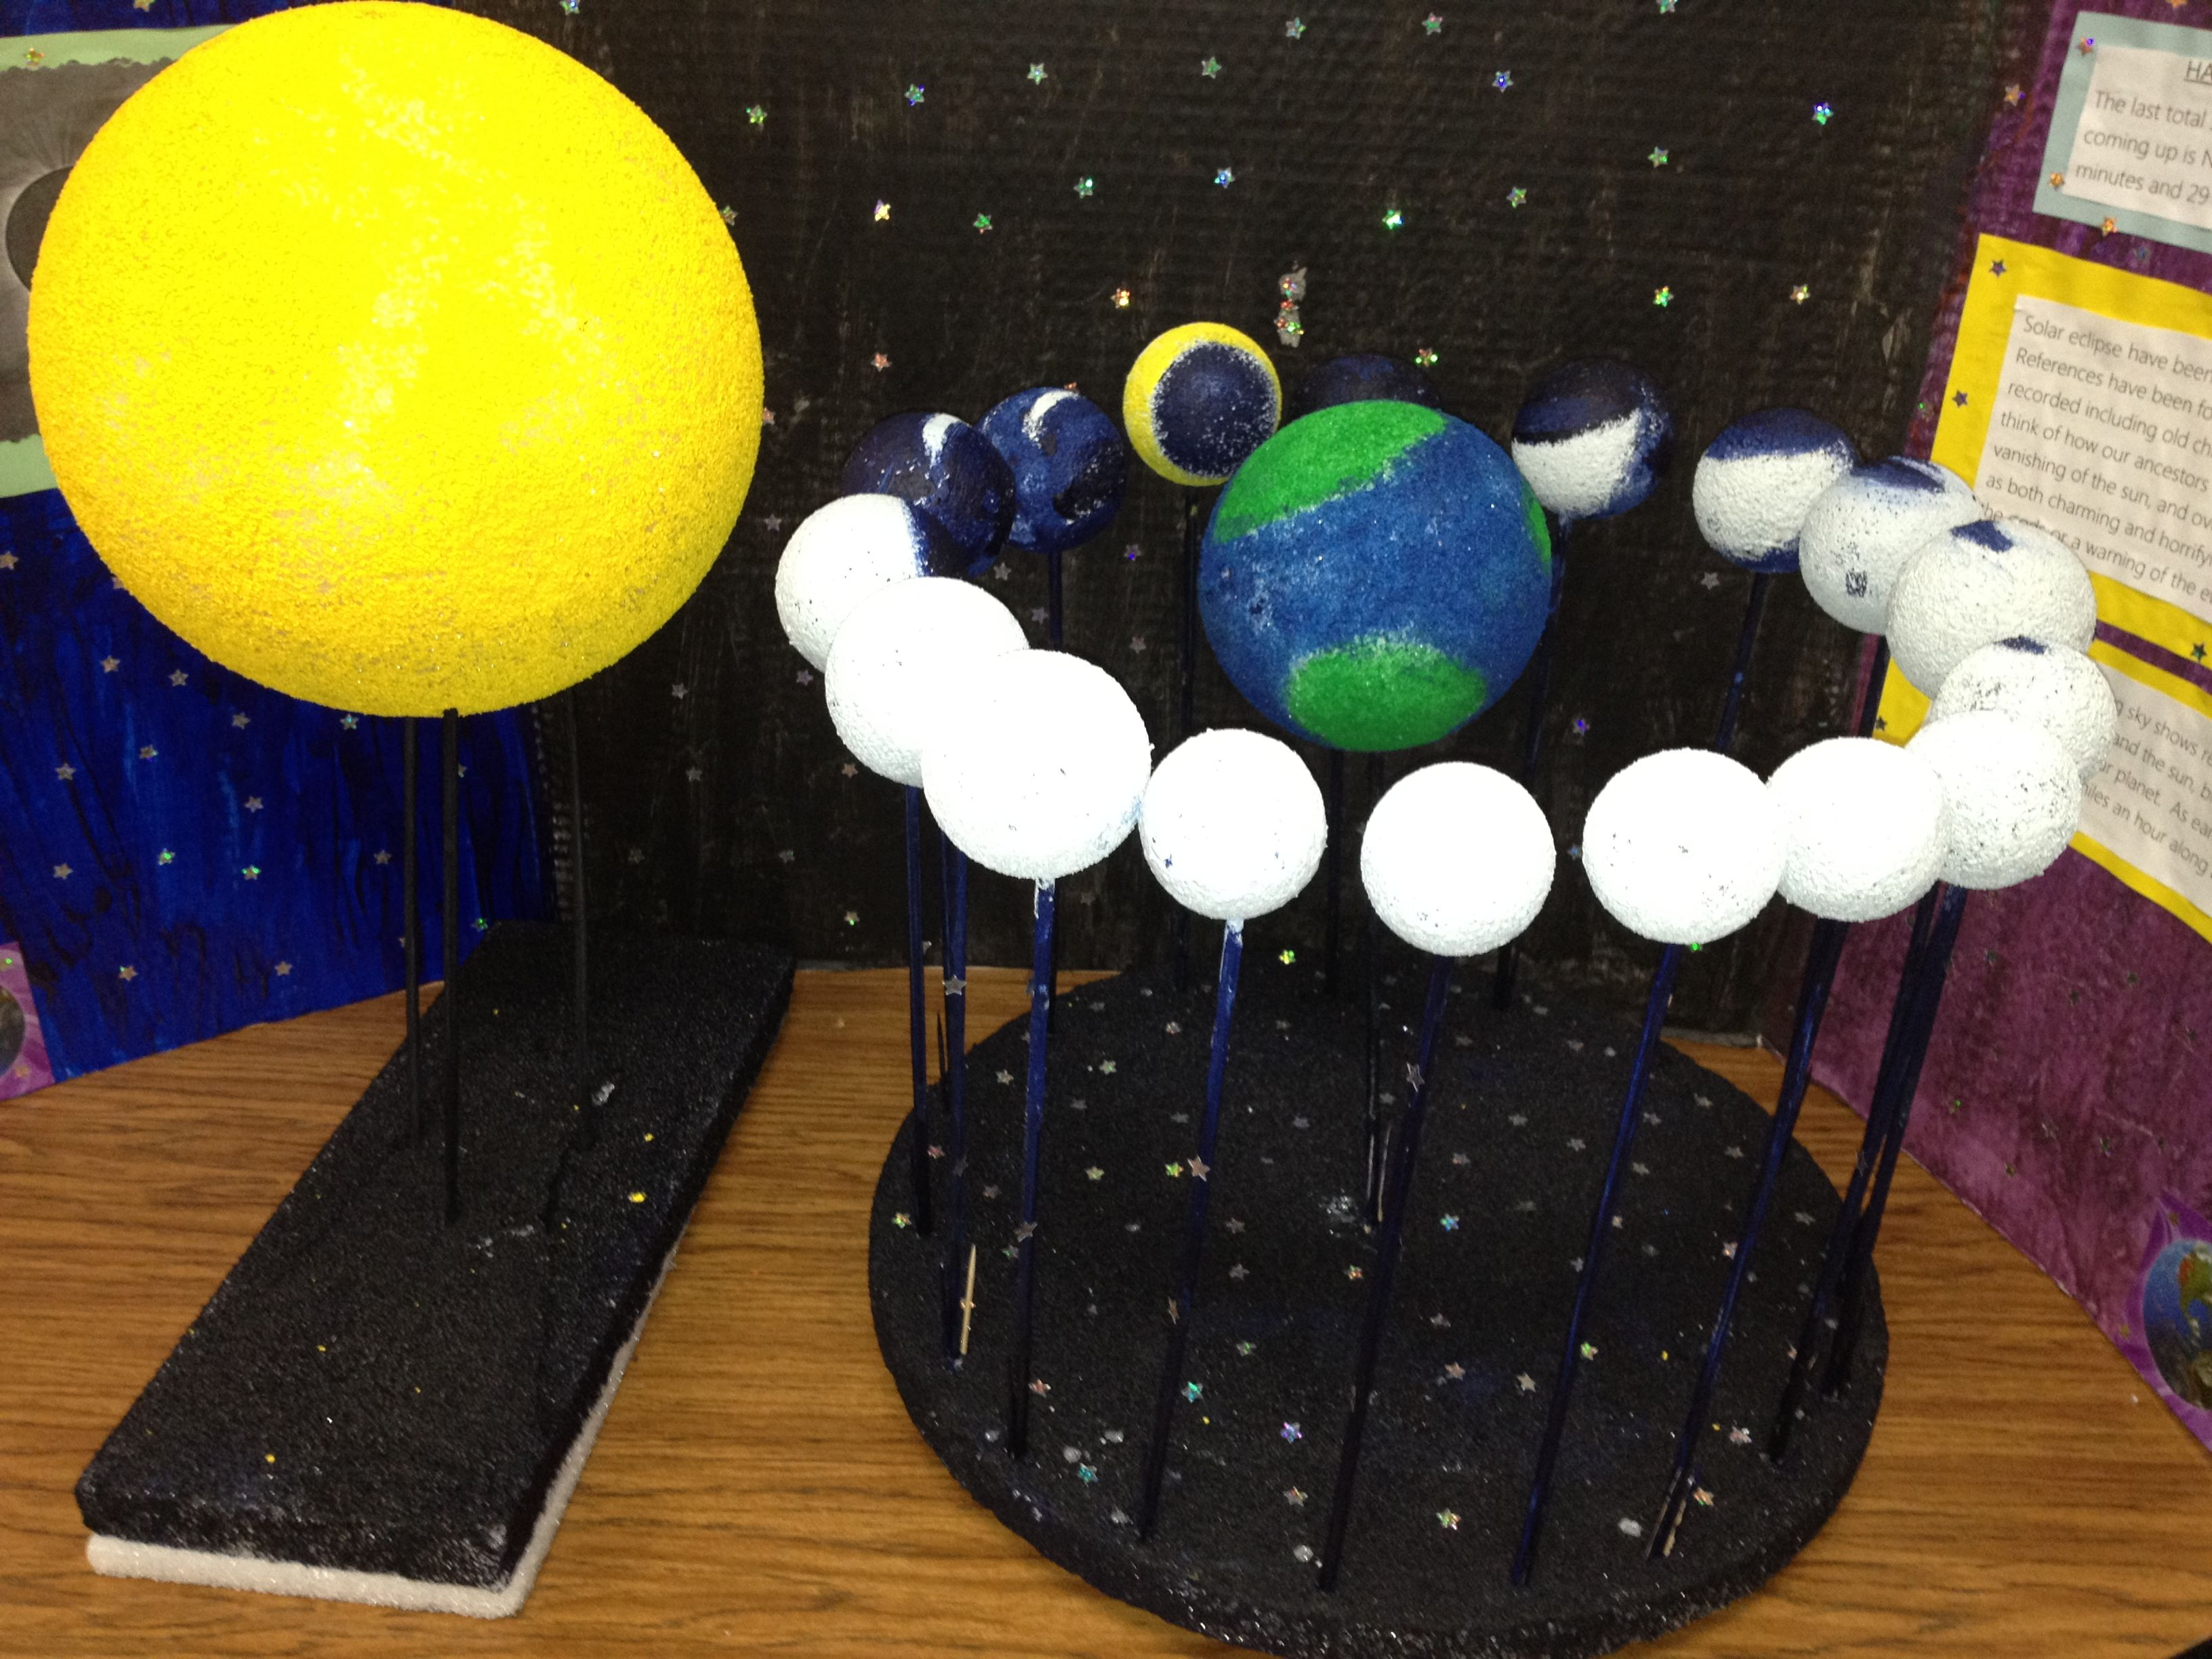 2017 solar system science project - photo #10